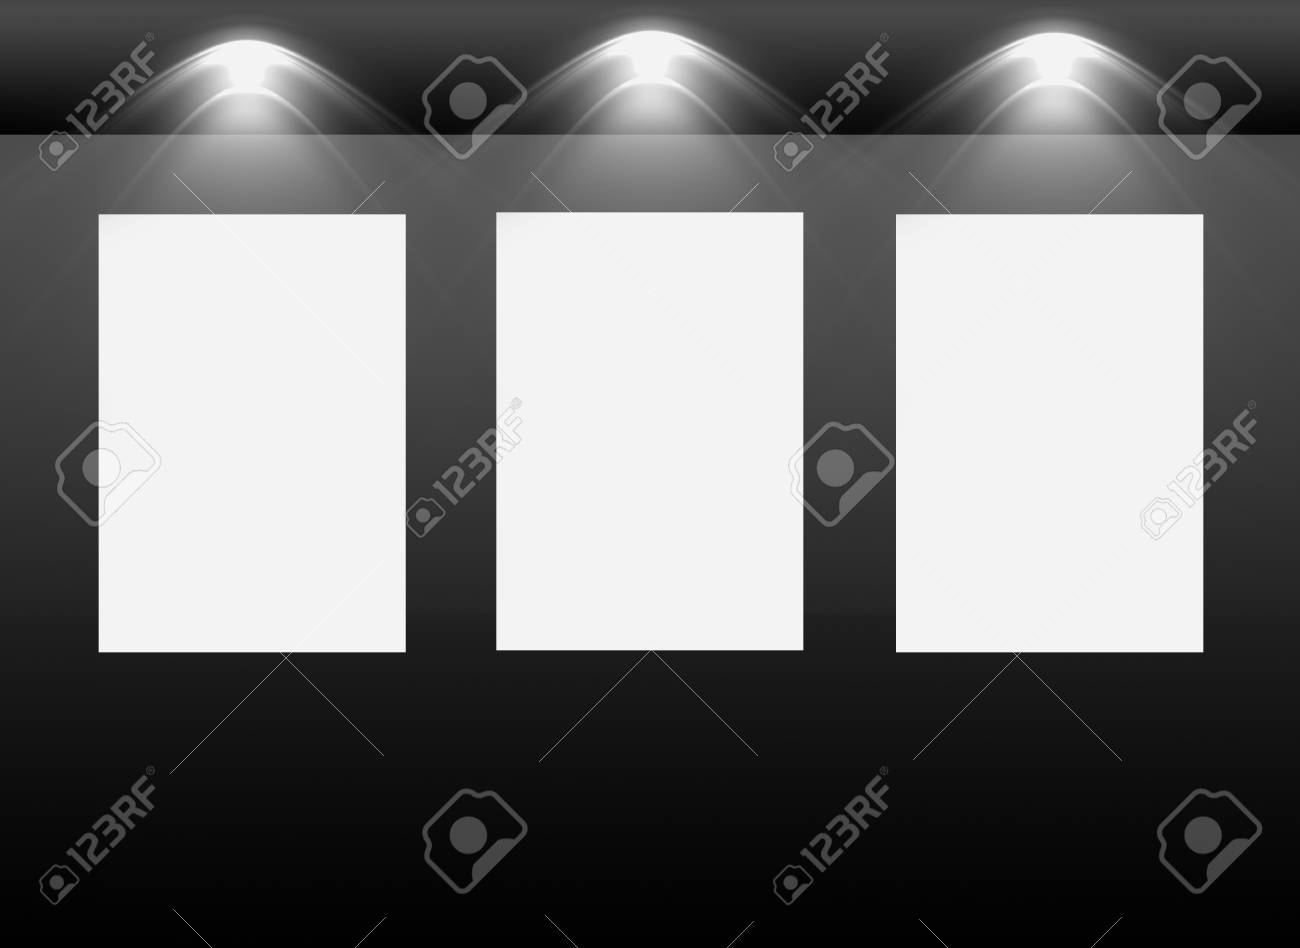 Gallery Interior with empty frames on wall Stock Photo - 12692809